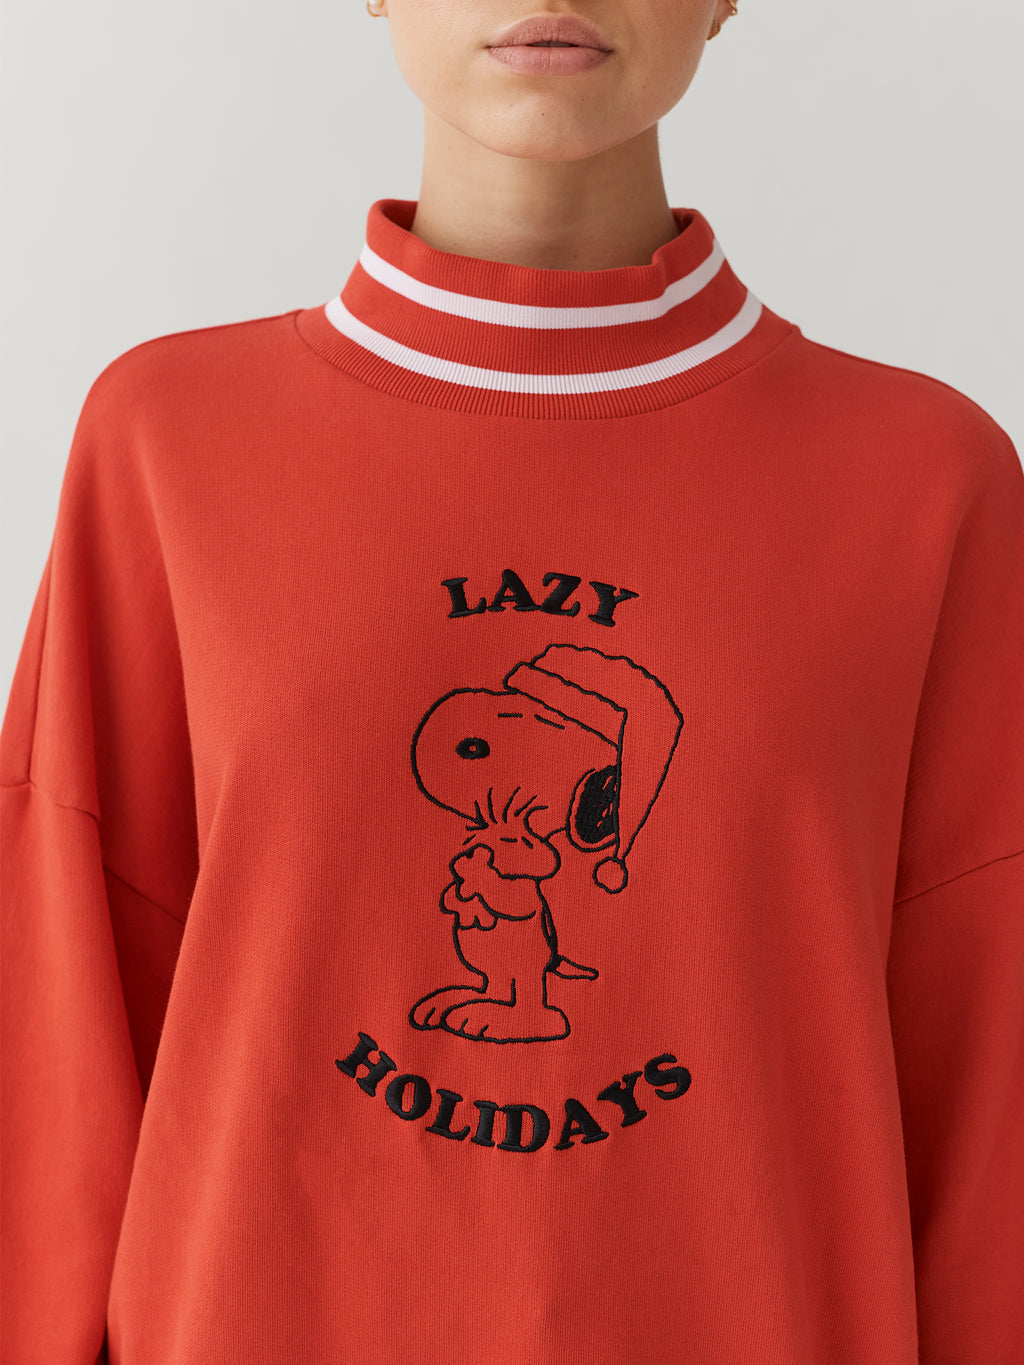 Lazy Oaf x Peanuts Lazy Holiday Sweatshirt